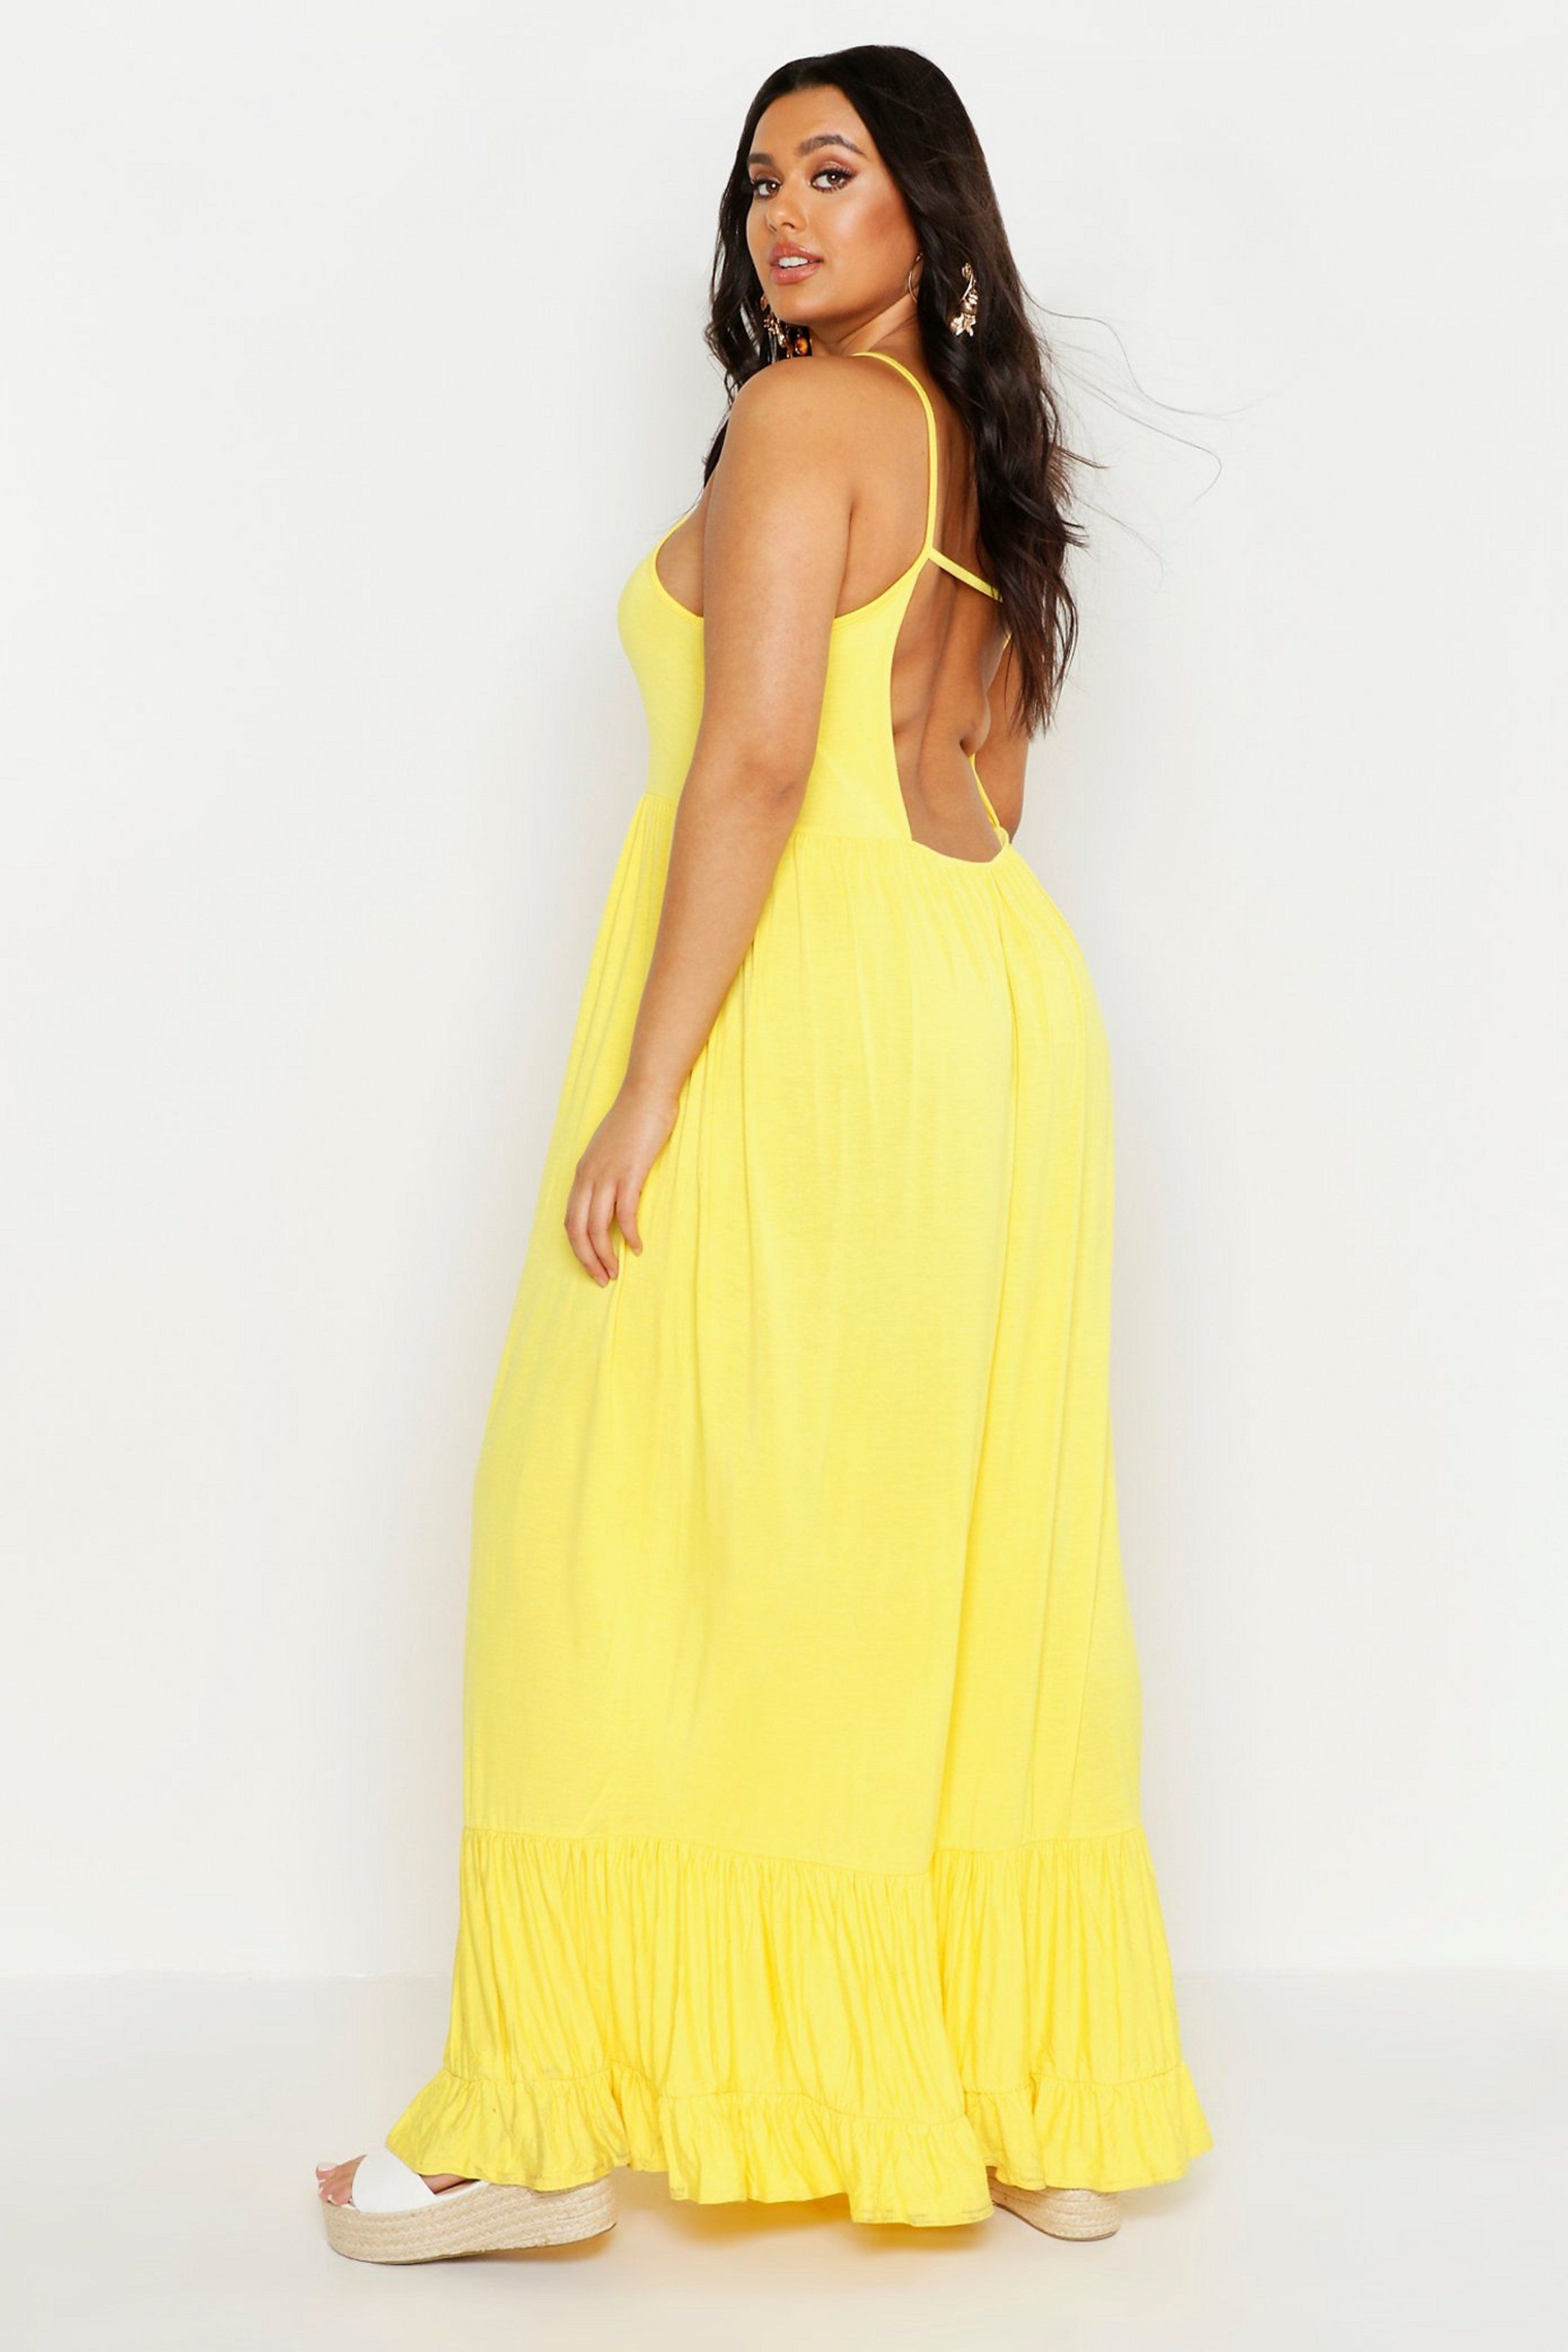 Plus Tiered Strappy Maxi Dress Boohoo Strappy Maxi Dress Kids Maxi Dresses Yellow Maxi Dress [ 3271 x 2181 Pixel ]